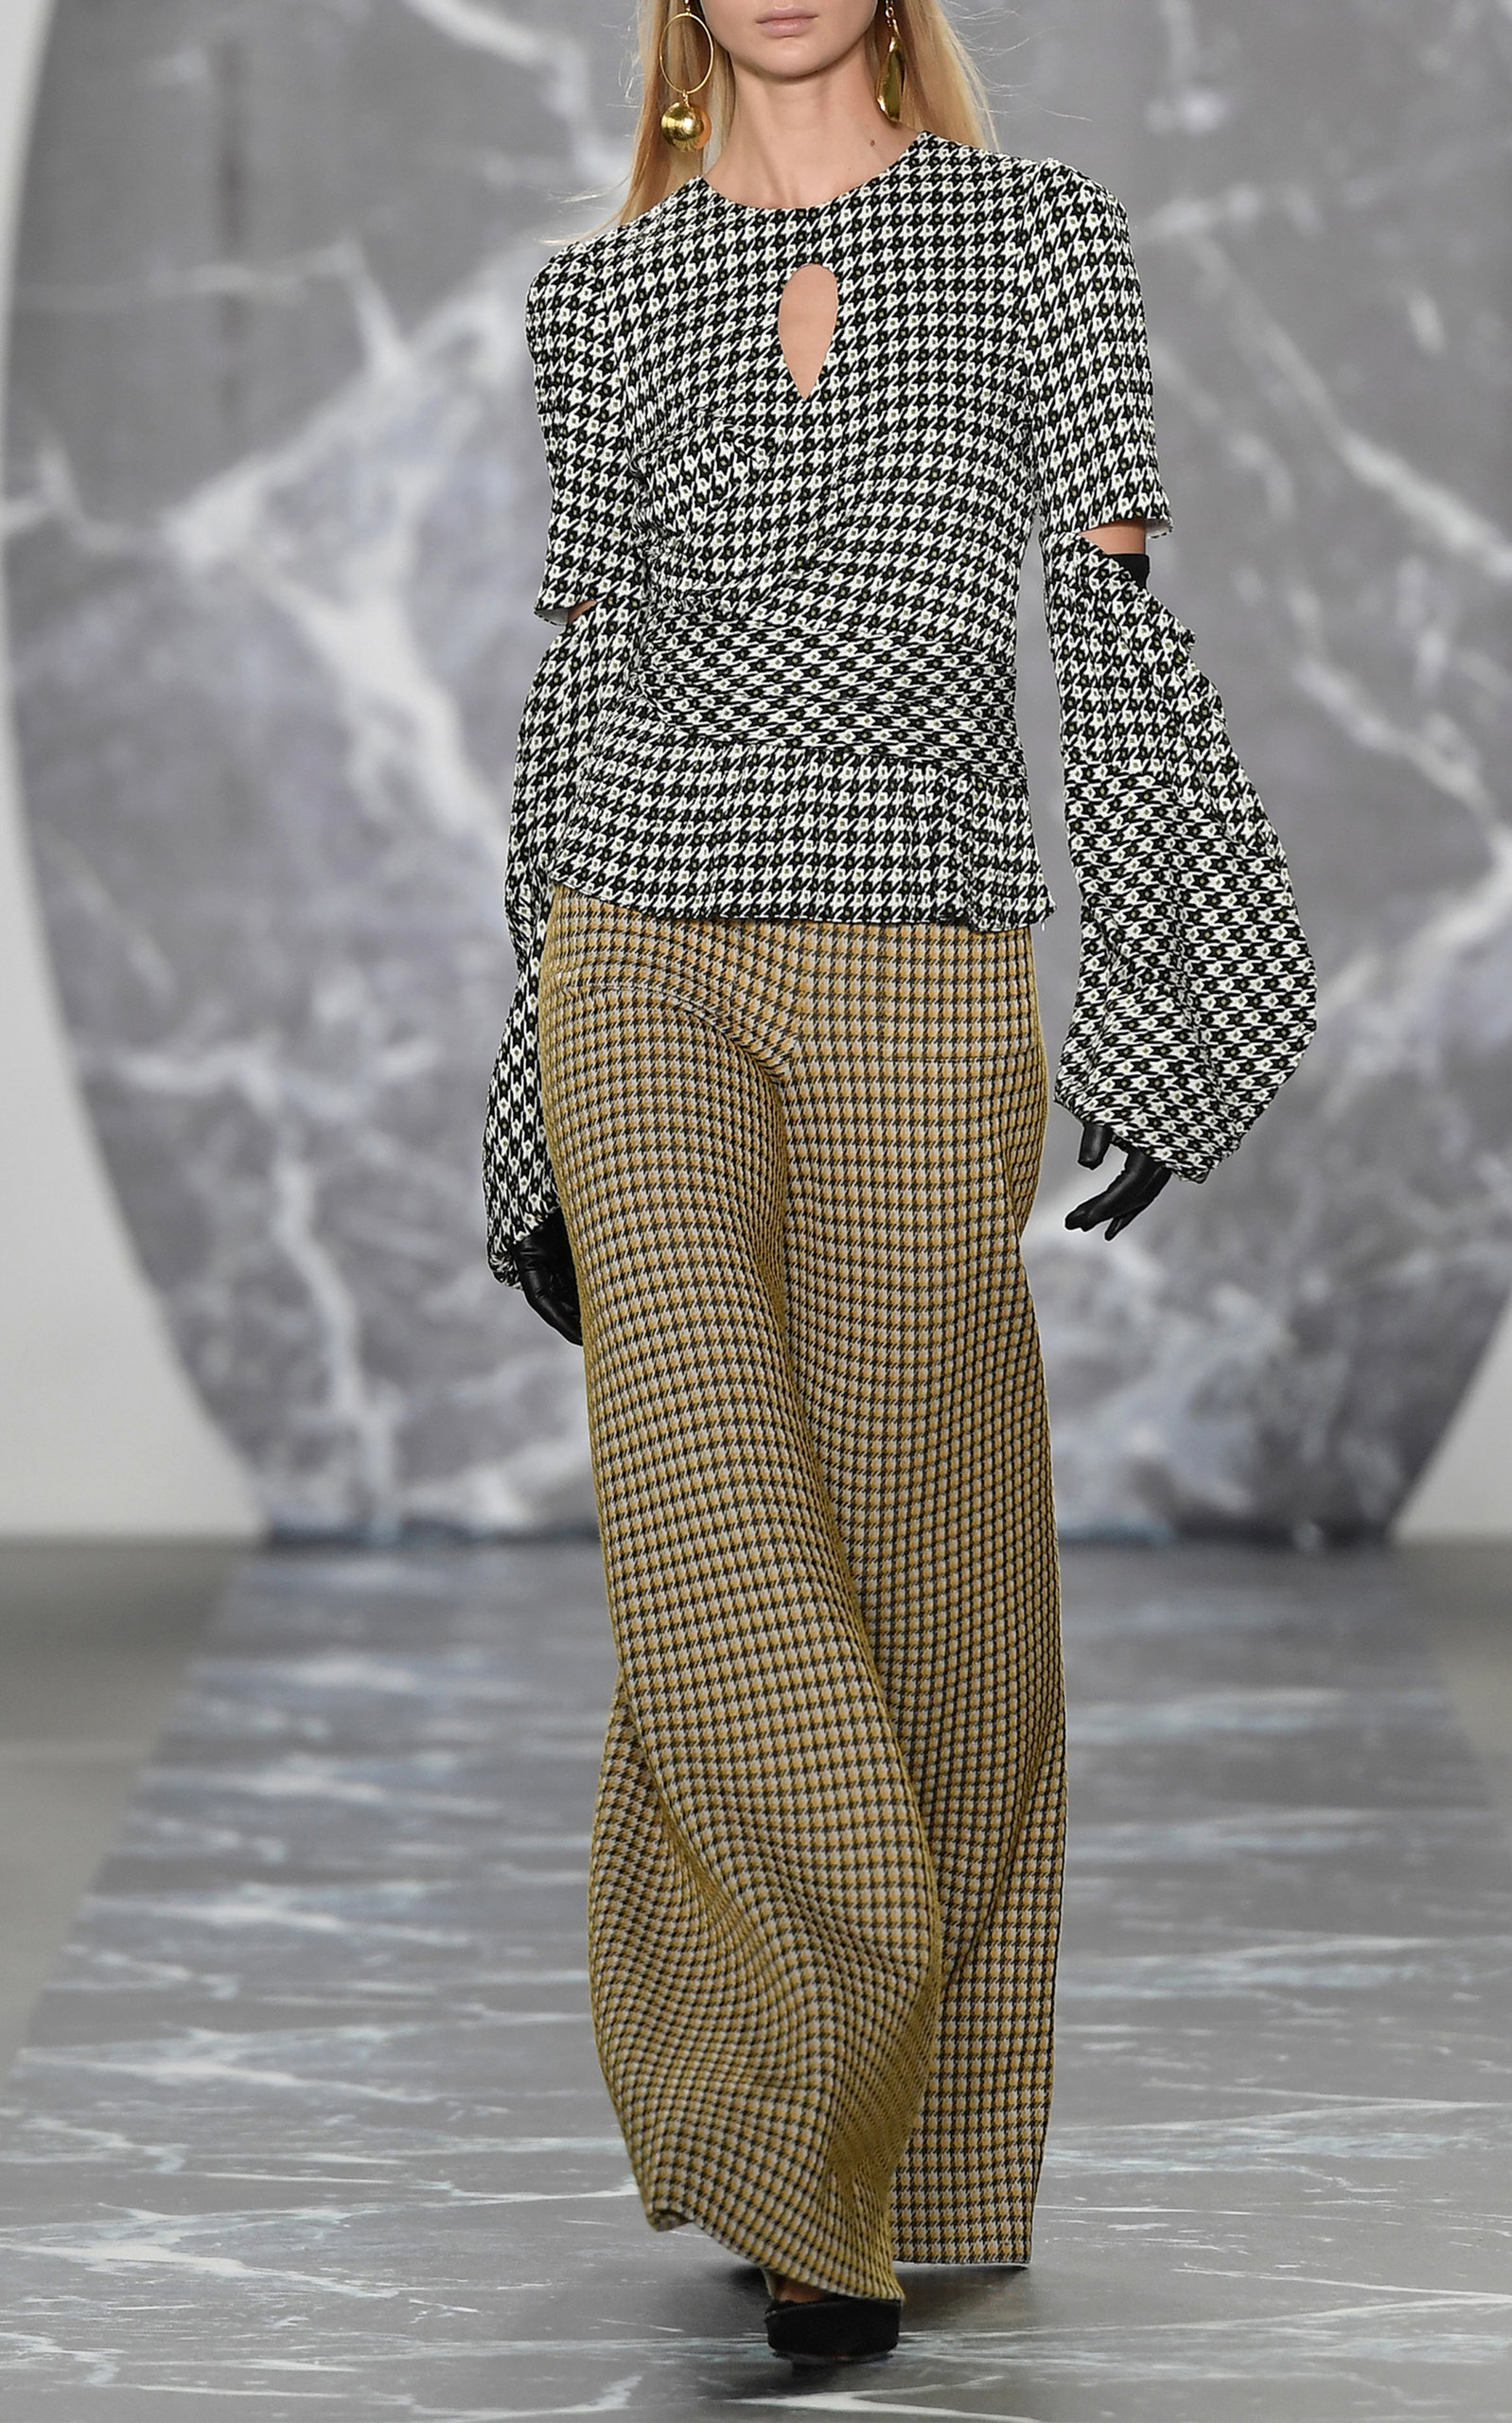 Clearance Finishline Sale Amazing Price Celeste Cutout Houndstooth Jacquard Blouse Hellessy With Paypal Online nsTsbpE6n